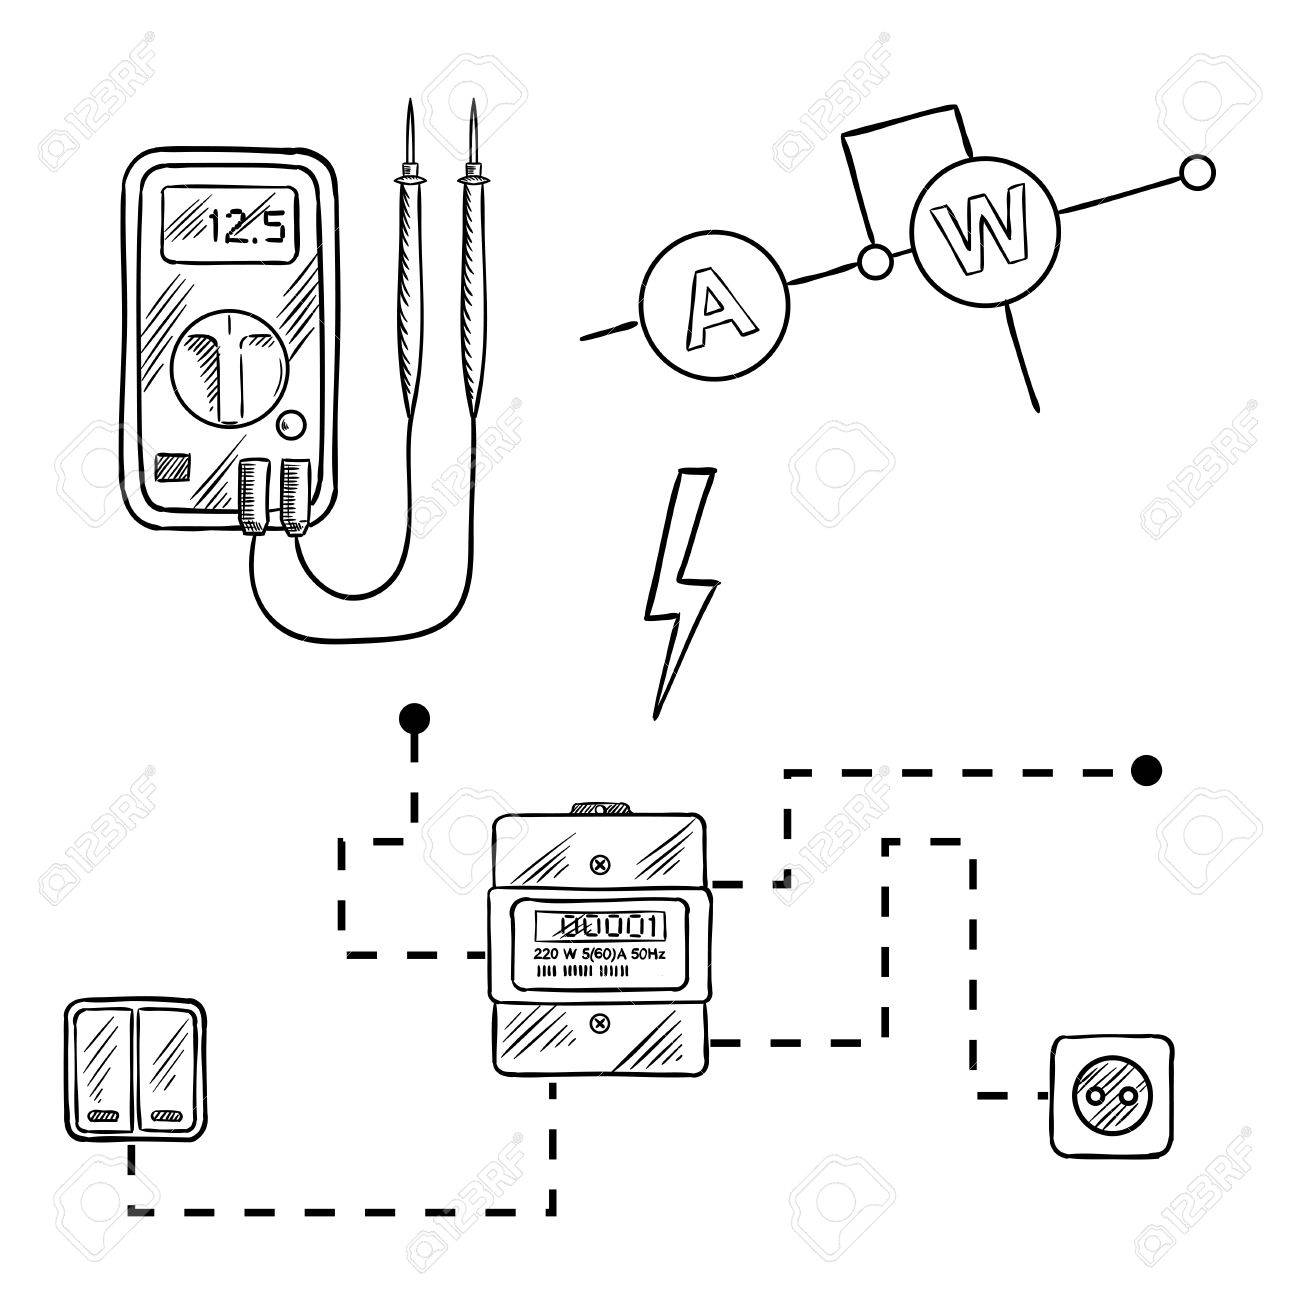 Digital Voltmeter Electricity Meter With Socket And Switches Switching Circuit Diagram Electrical Sketch Icons